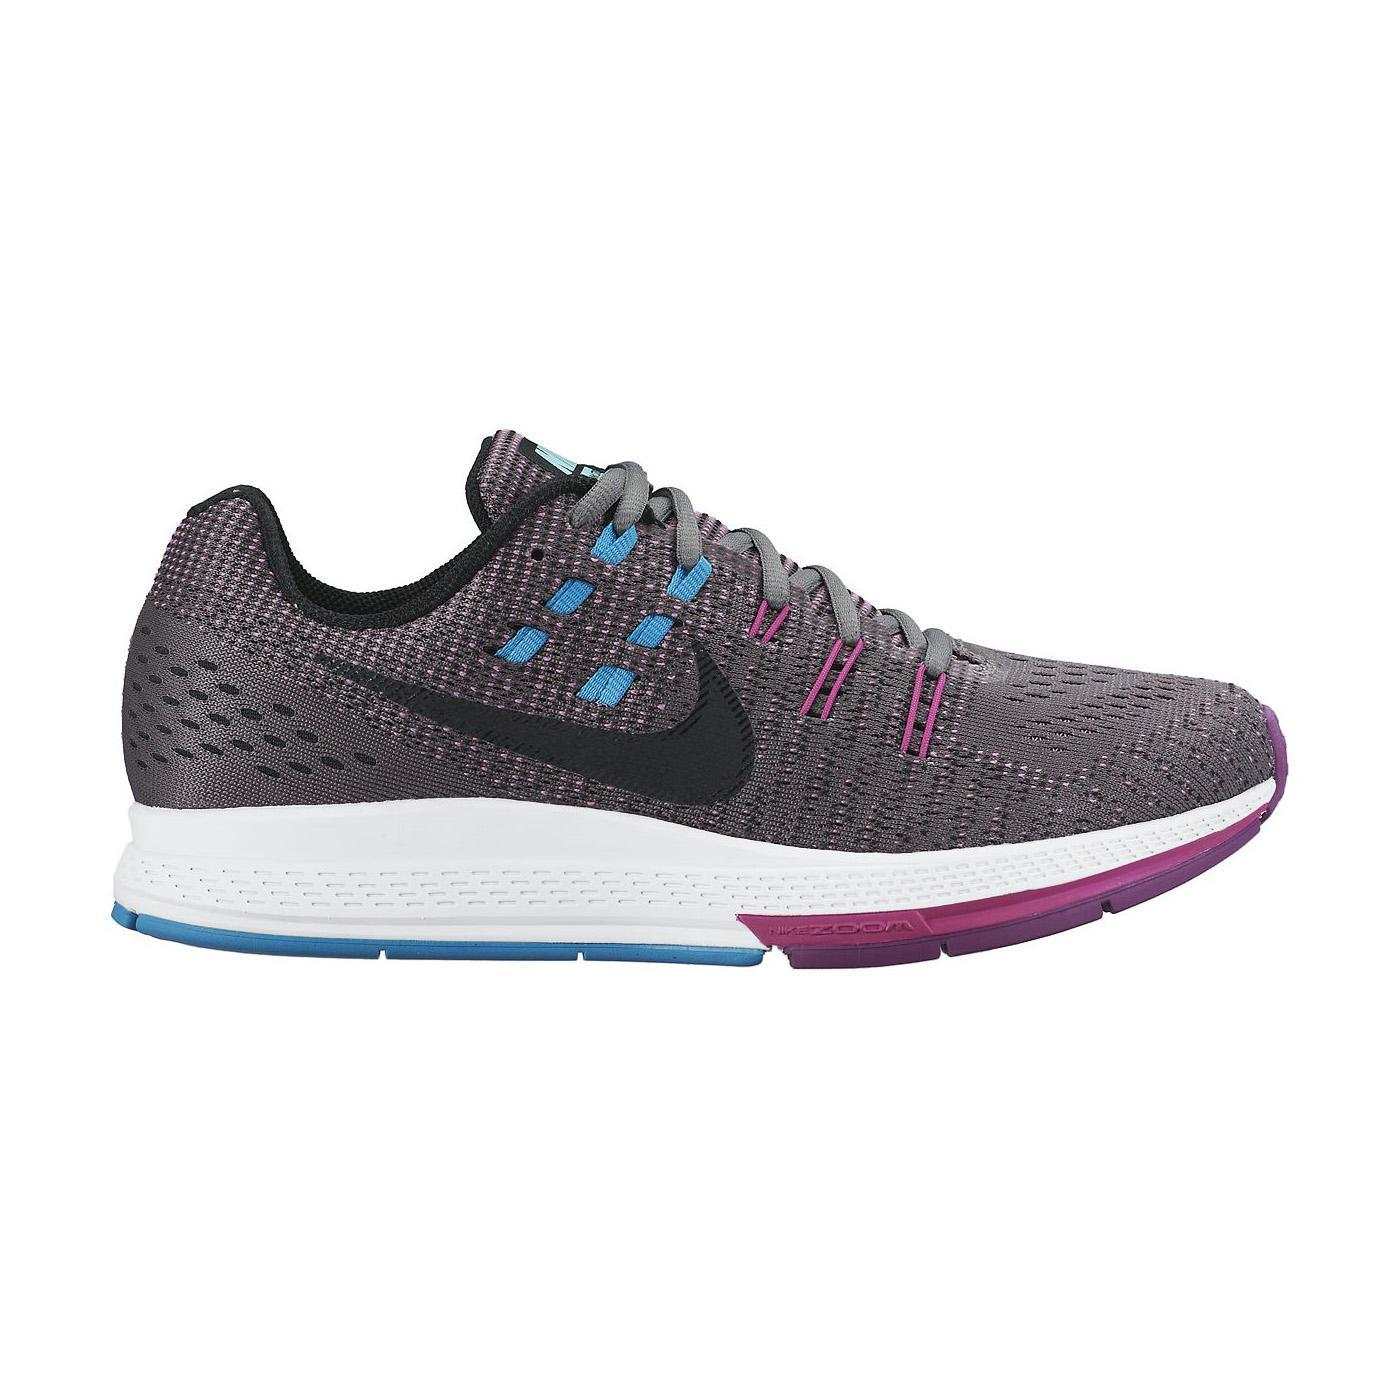 competitive price 2be33 f80b3 ... blue armory navy cb000 bd80f  uk womens nike air zoom structure 19  fleet feet 40c65 69e61